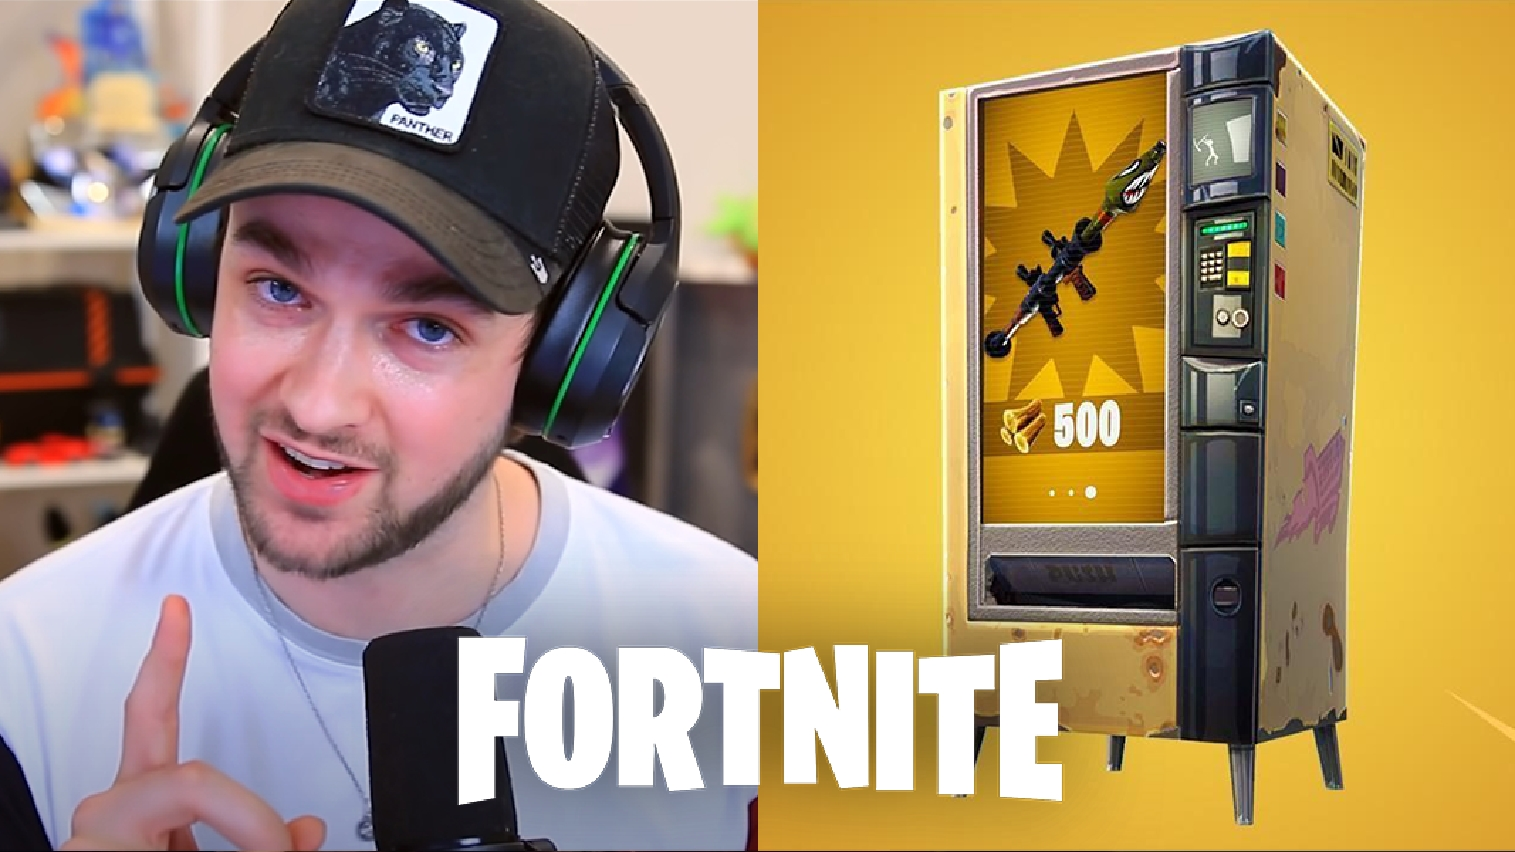 Ali-A and Fortnite vending machine